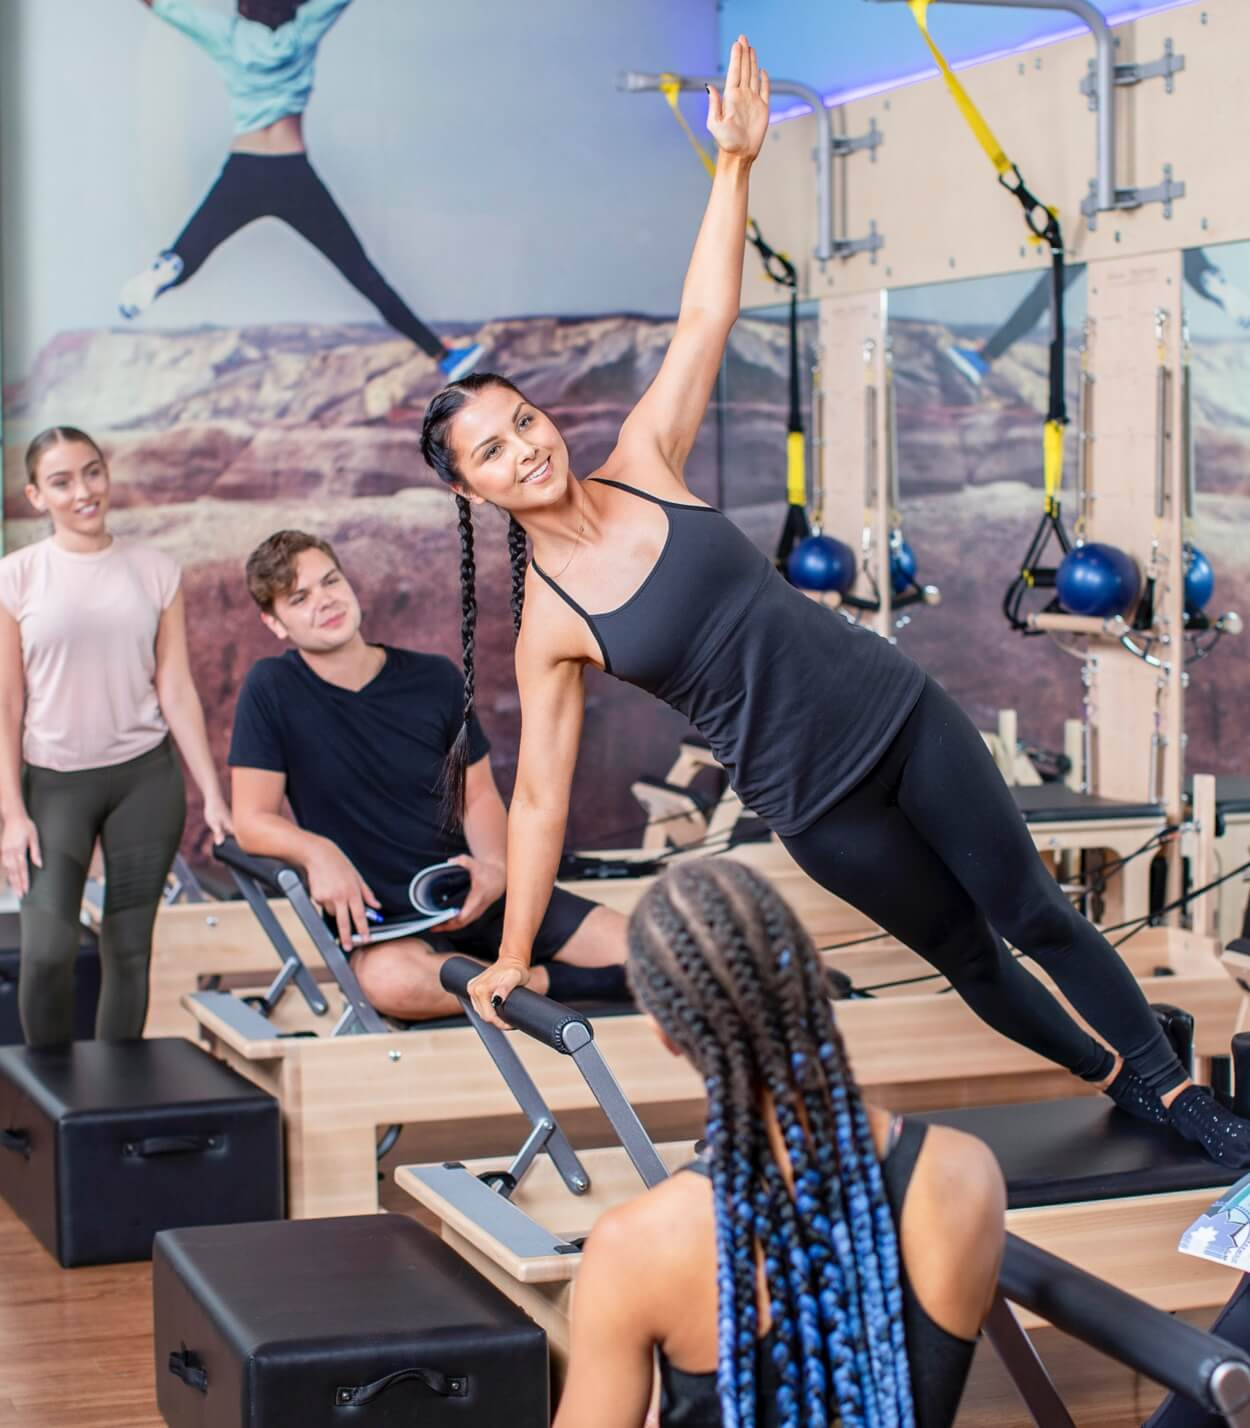 The World's Most Exciting Pilates Workout On-Demand